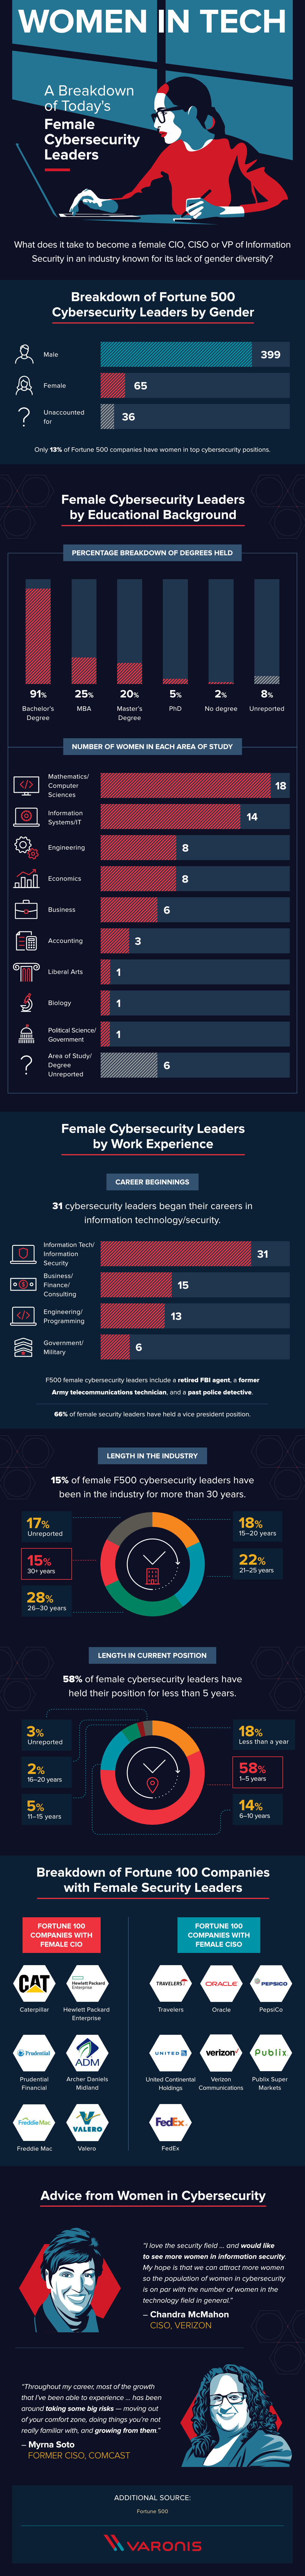 Women in Tech: The Anatomy of a Female Cybersecurity Leader - #infographic